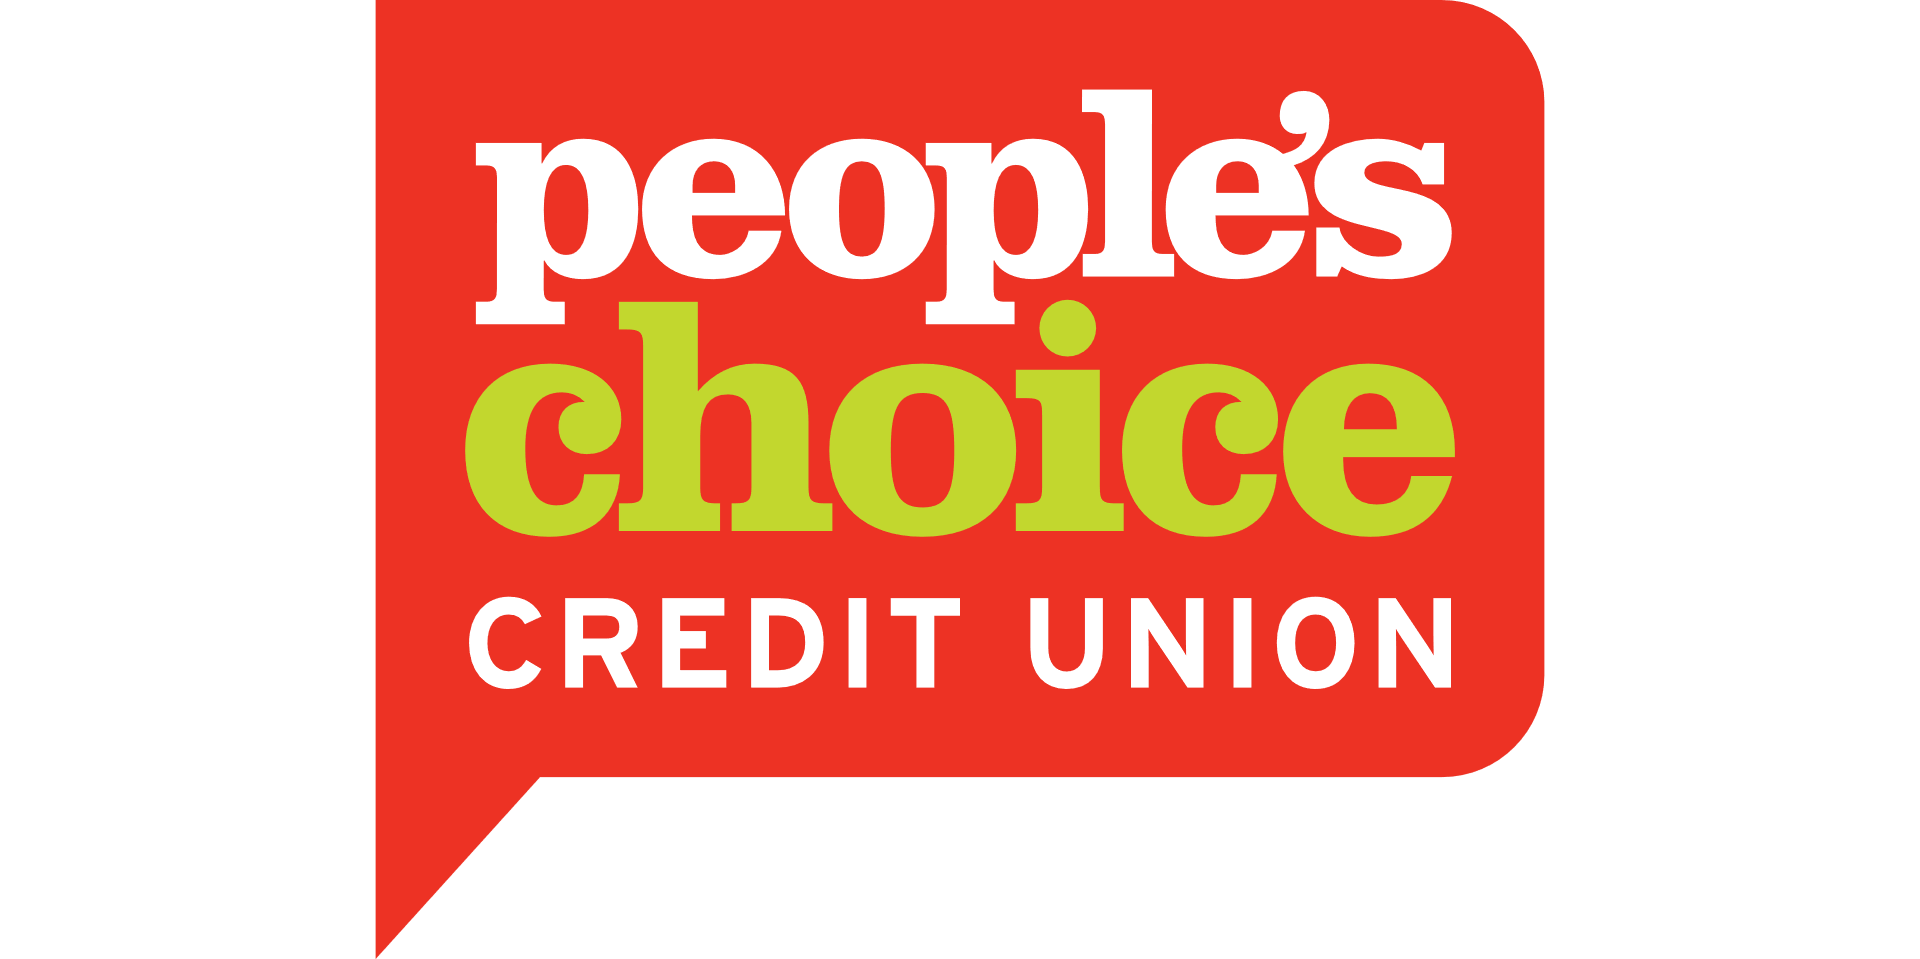 People's Choice Credit Union - Wantirna South, VIC 3152 - (01) 3118 1182 | ShowMeLocal.com